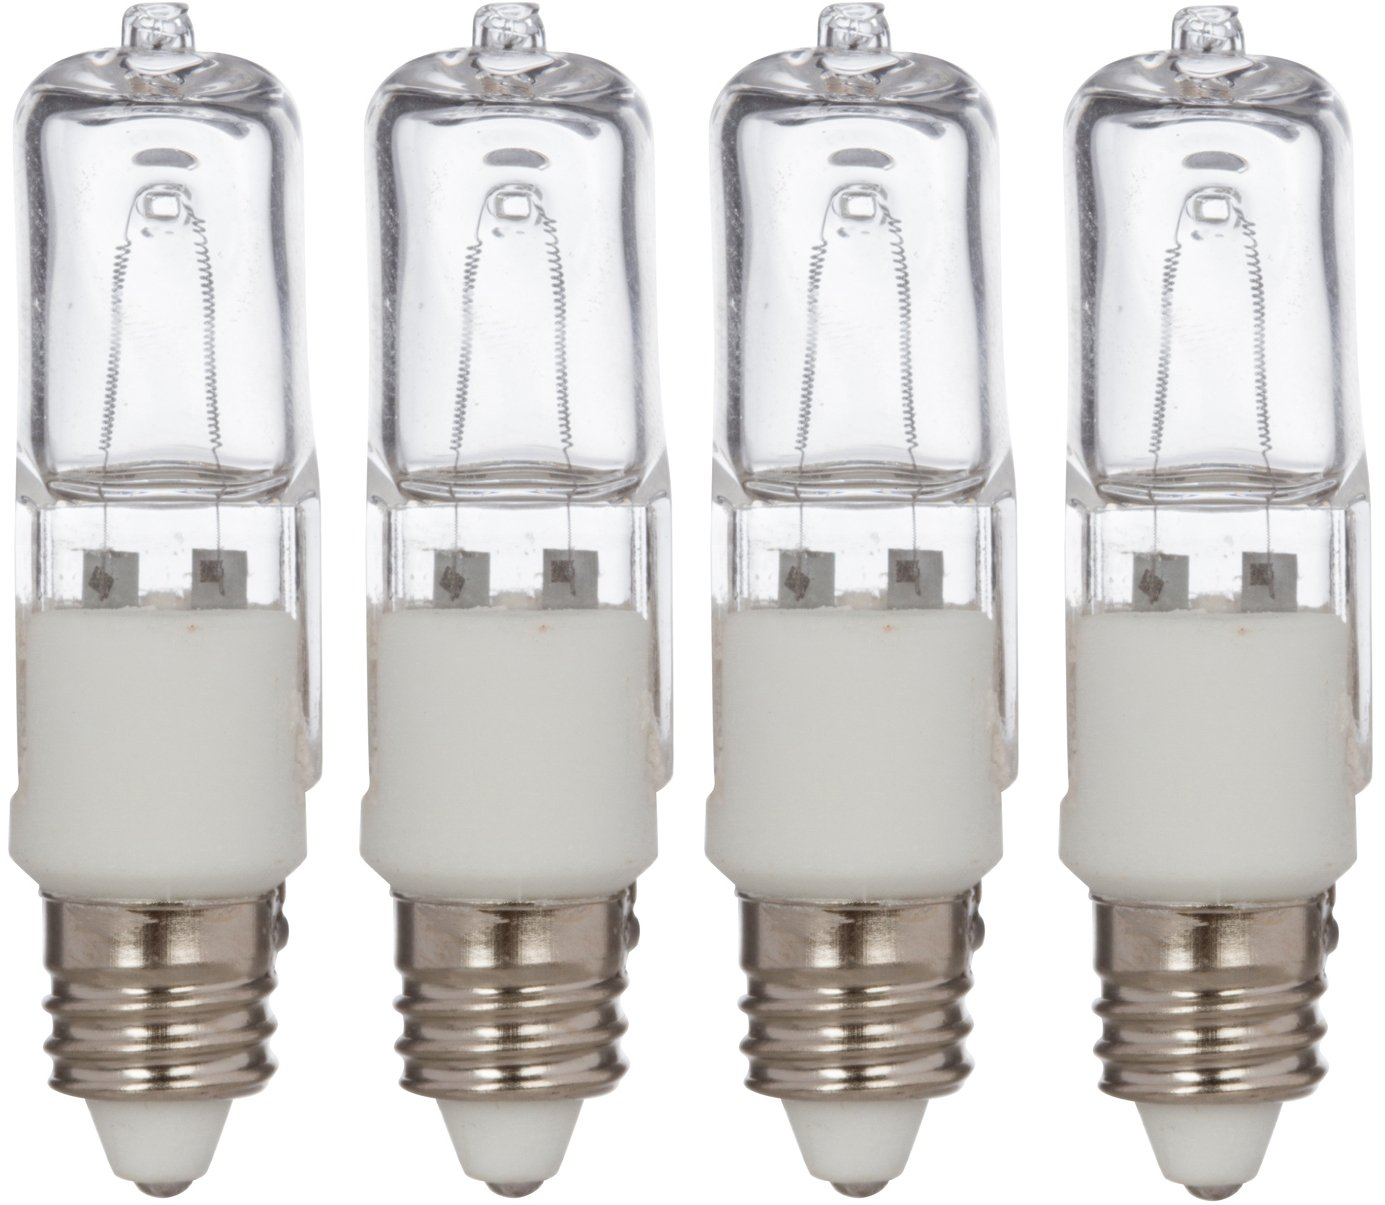 [4 Pack] Simba Lighting Halogen E11 T4 75 Watt 780lm 120 Volt Light Bulb for Chandeliers, Pendants, Table Lamps, Cabinet Lighting, Mini-Candelabra Base, 75W JD 110V 120V 130V Warm White 2700K Dimmable